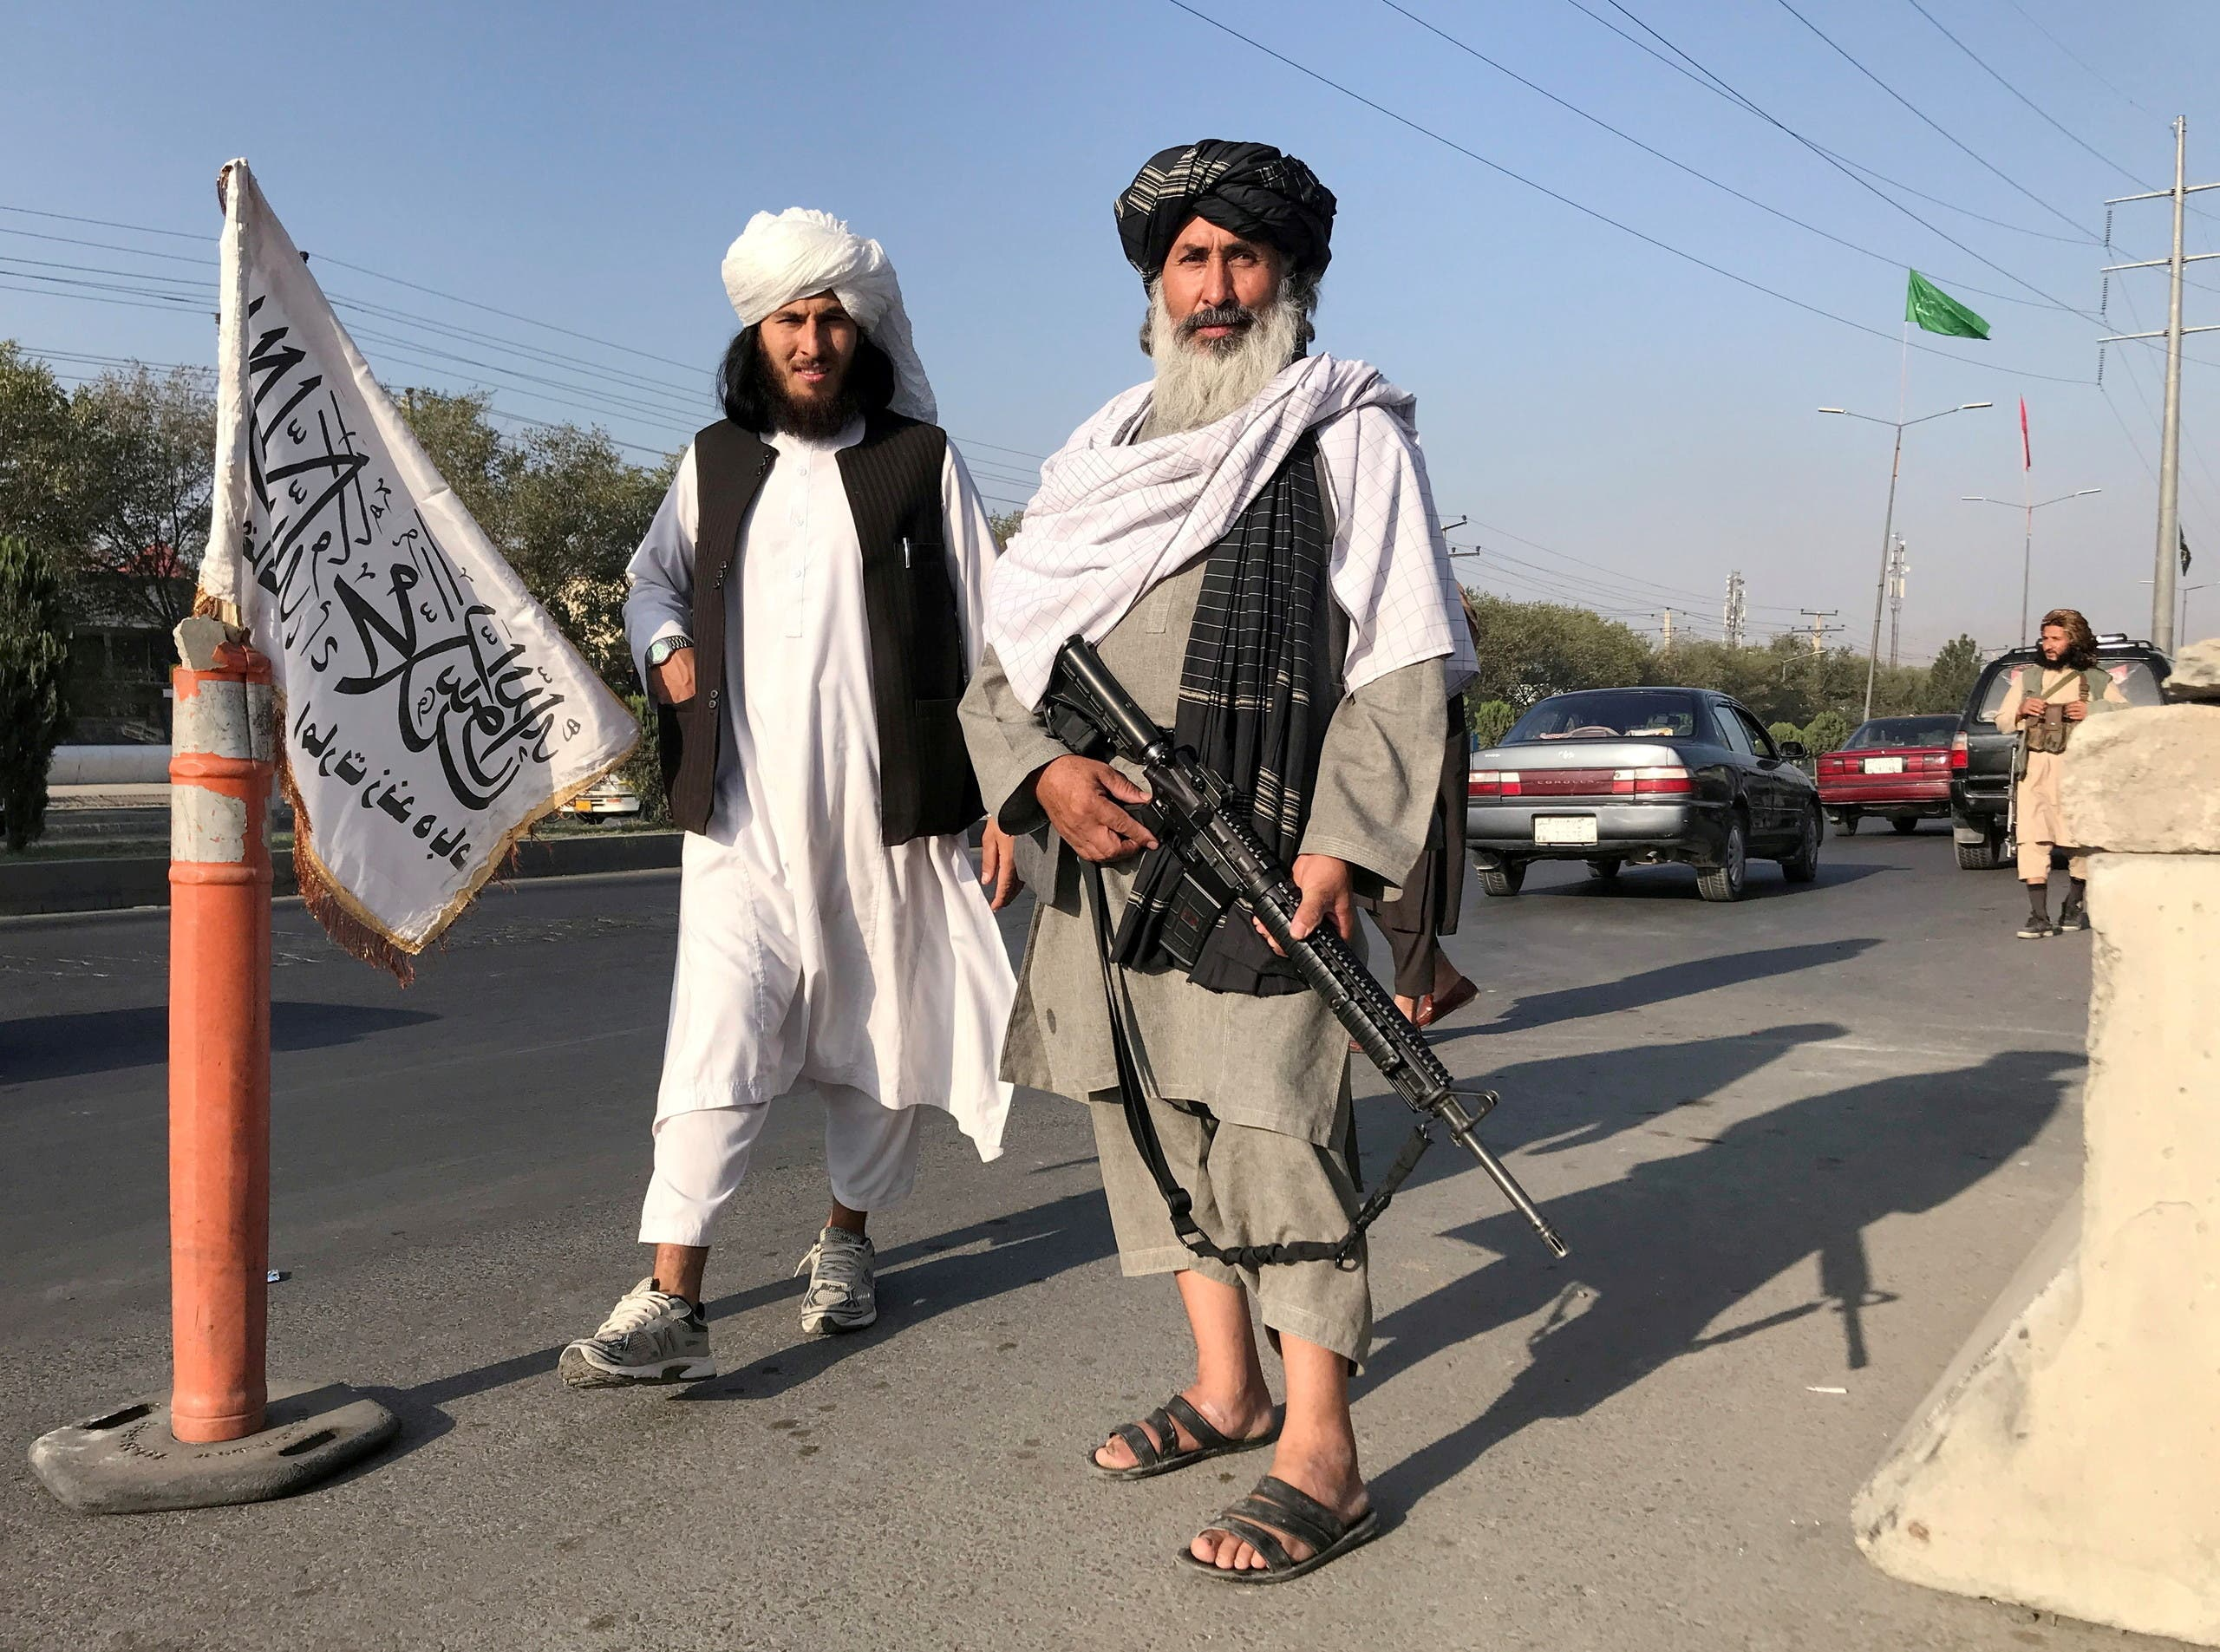 A Taliban fighter holding an M16 assault rifle stands outside the Interior Ministry in Kabul, Afghanistan, August 16, 2021. (File photo: Reuters)